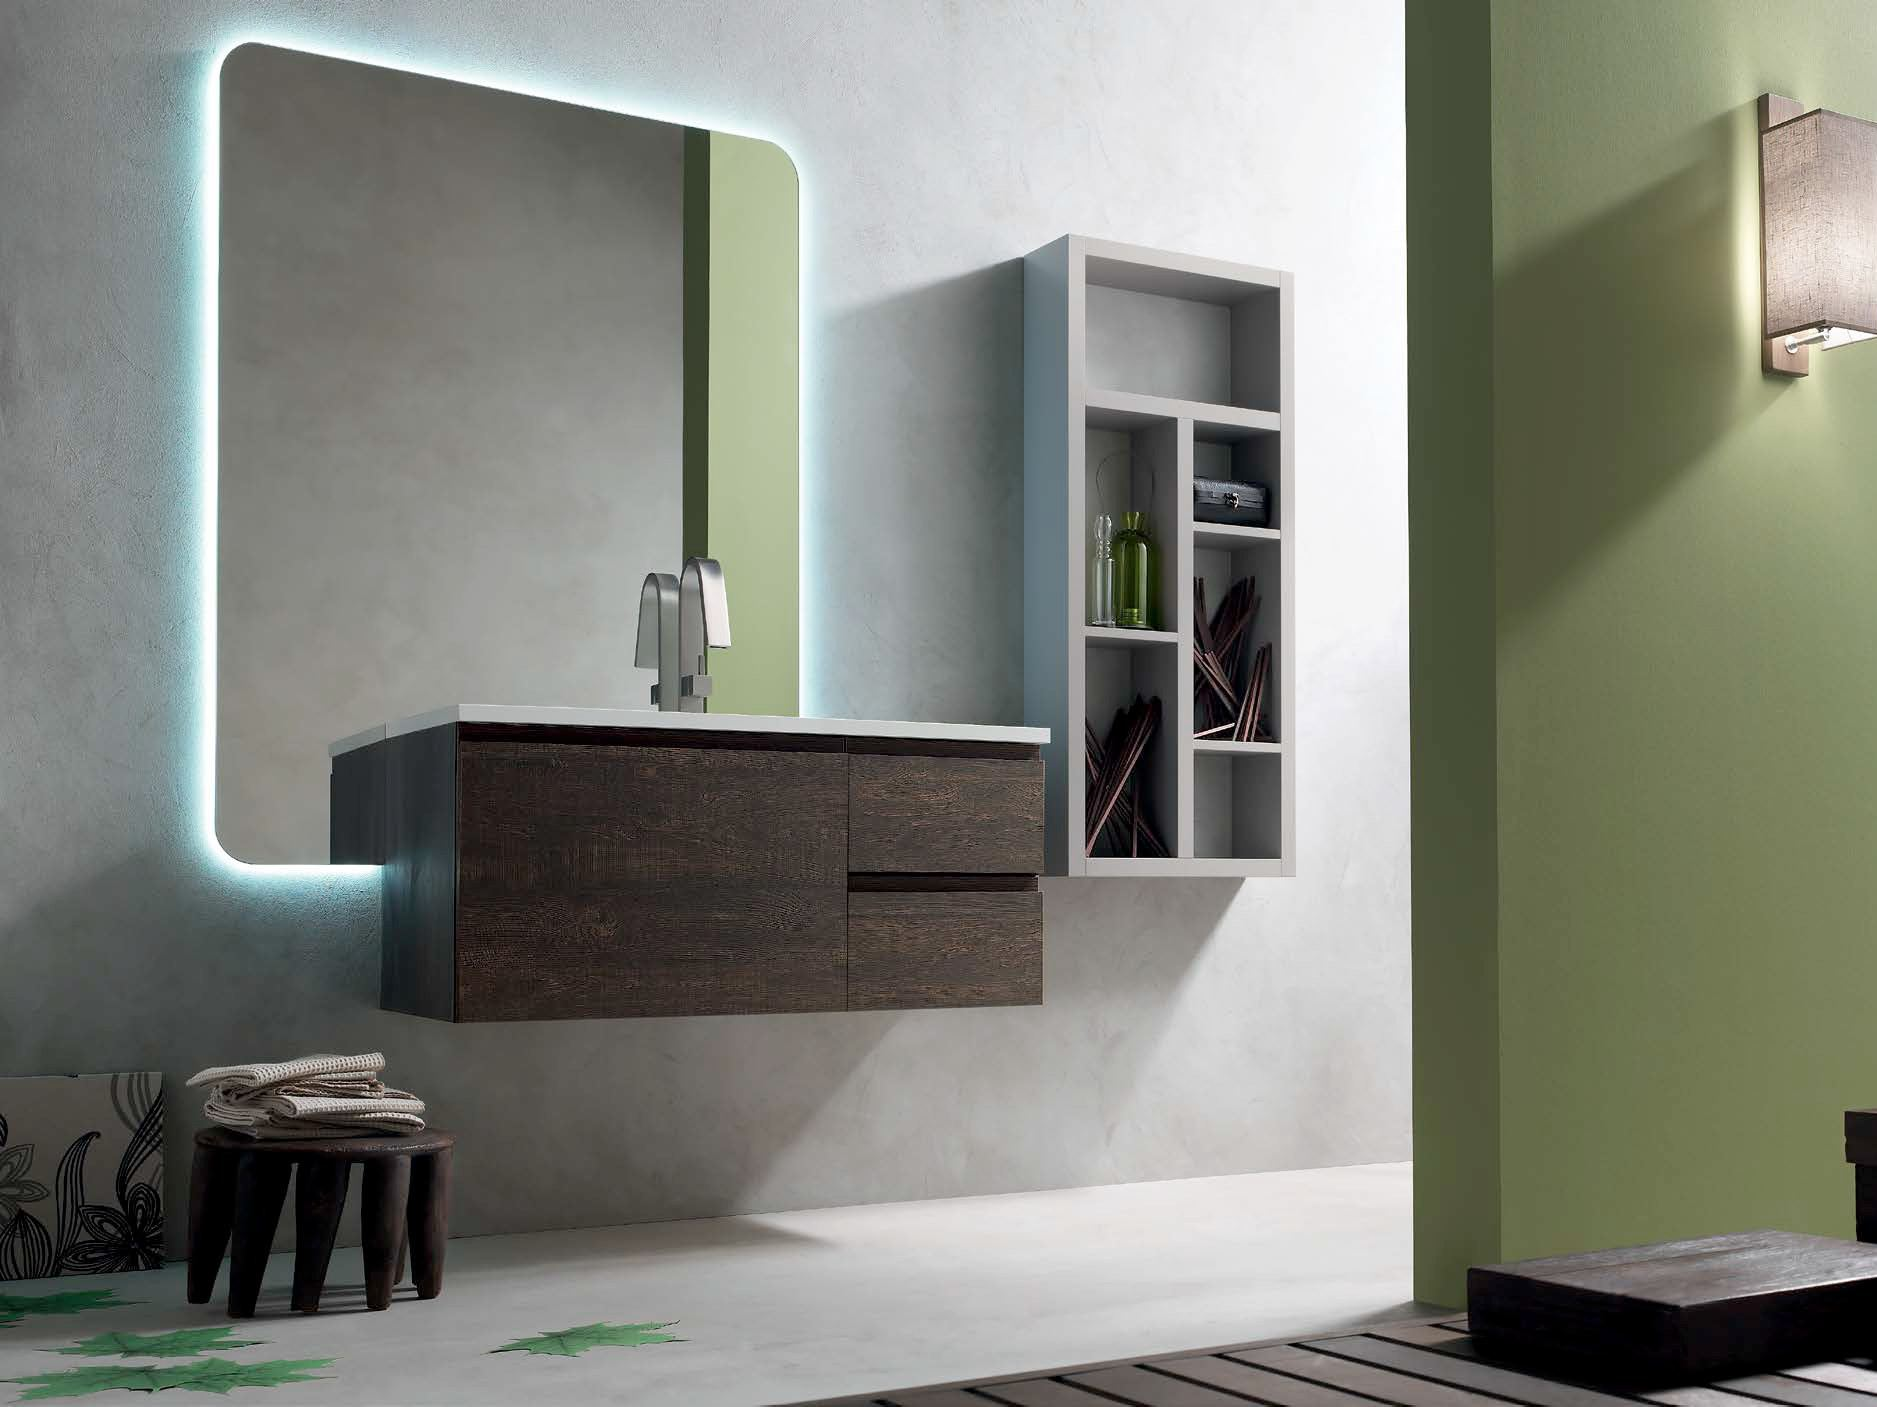 Wooden Bathroom Cabinet / Vanity Unit E.LY   COMPOSITION 41 E.Ly Collection  By Arcom